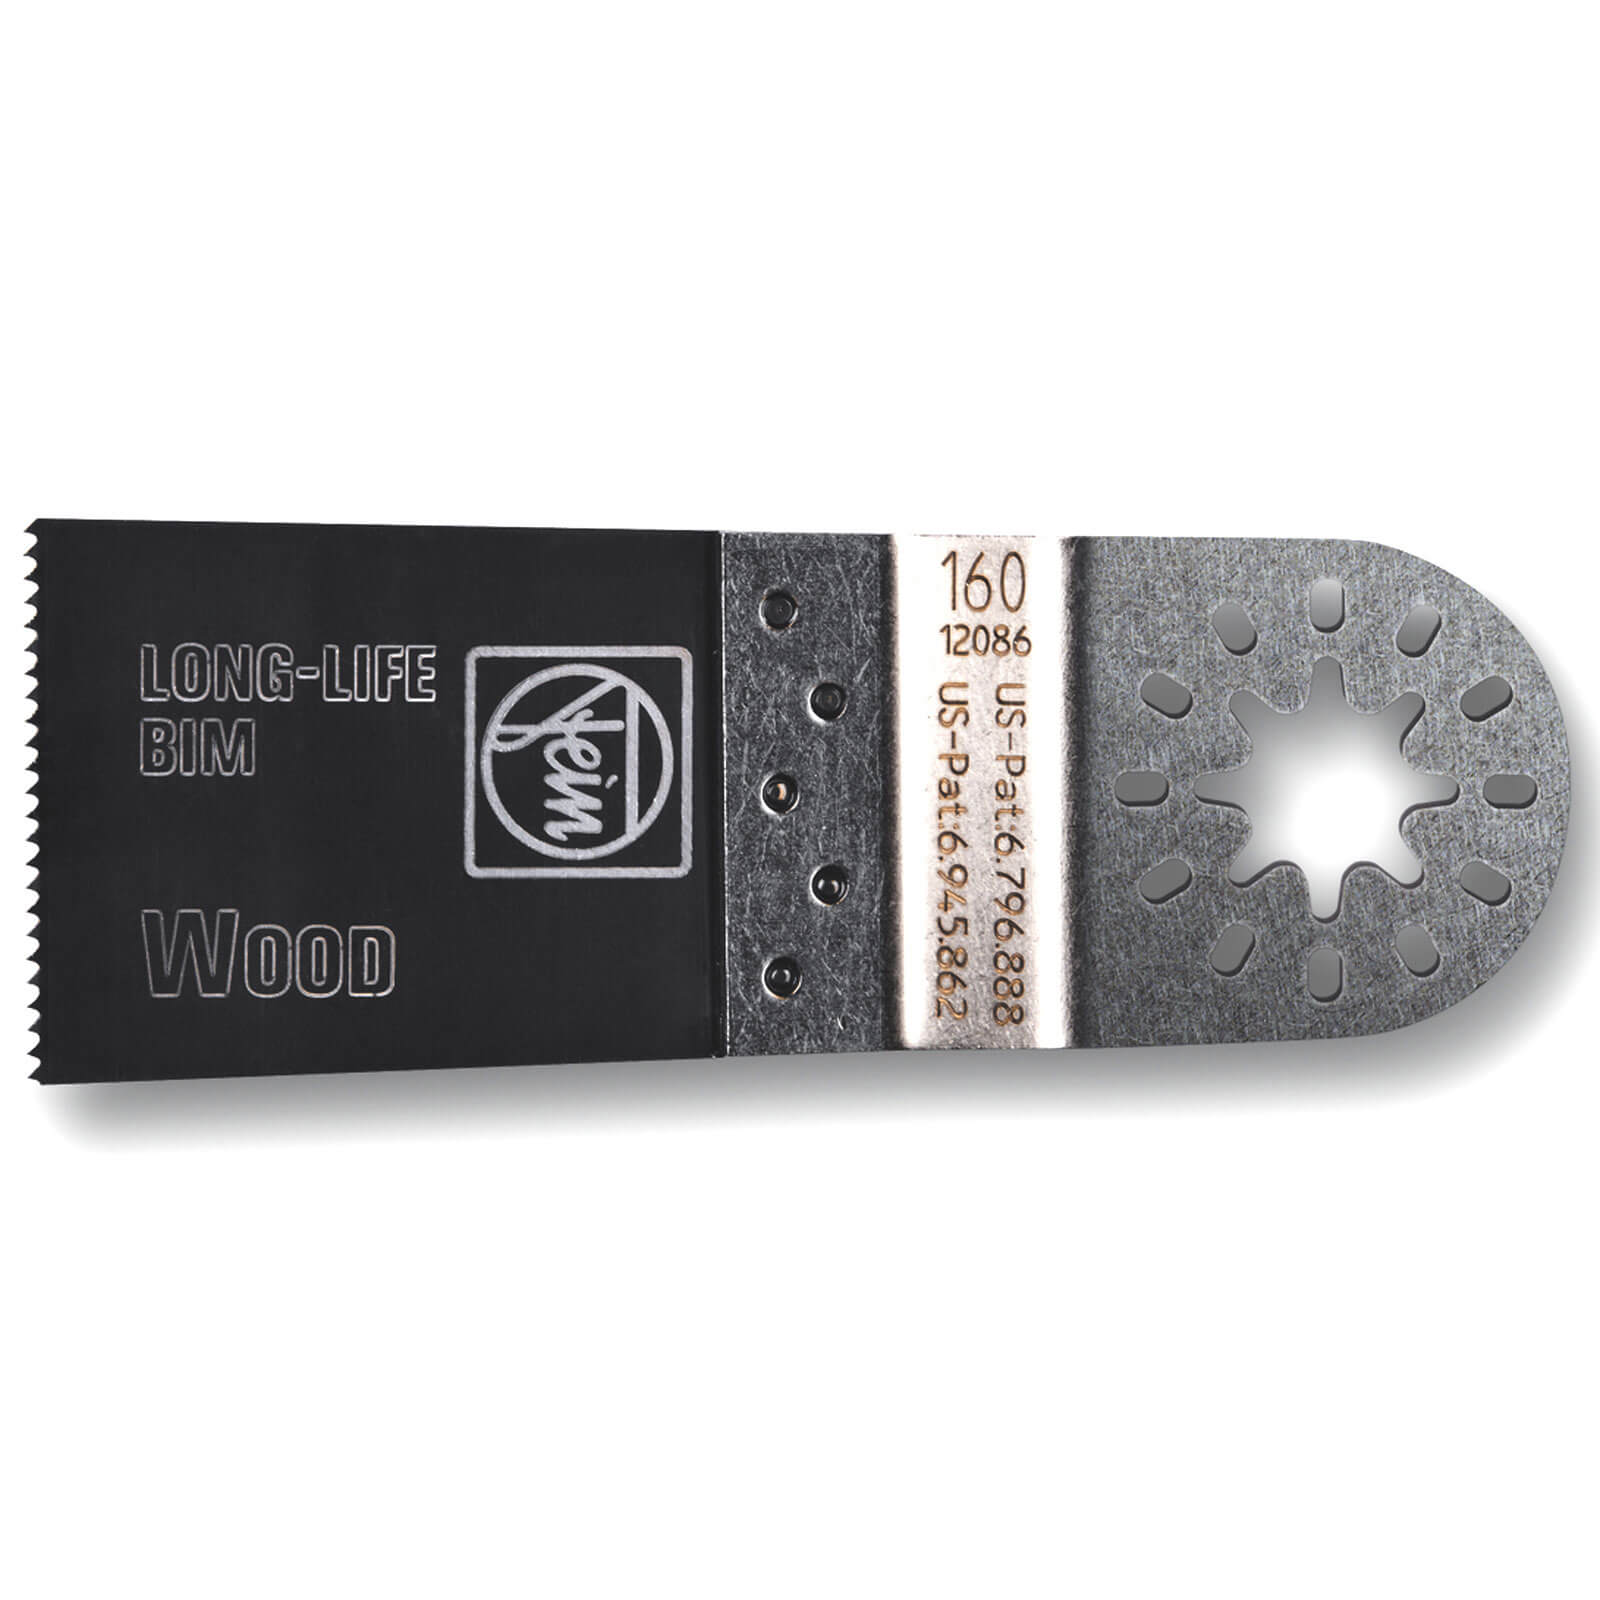 Image of Fein E-Cut BiM Long Life Fine Plunge Saw Blade 35mm Pack of 3